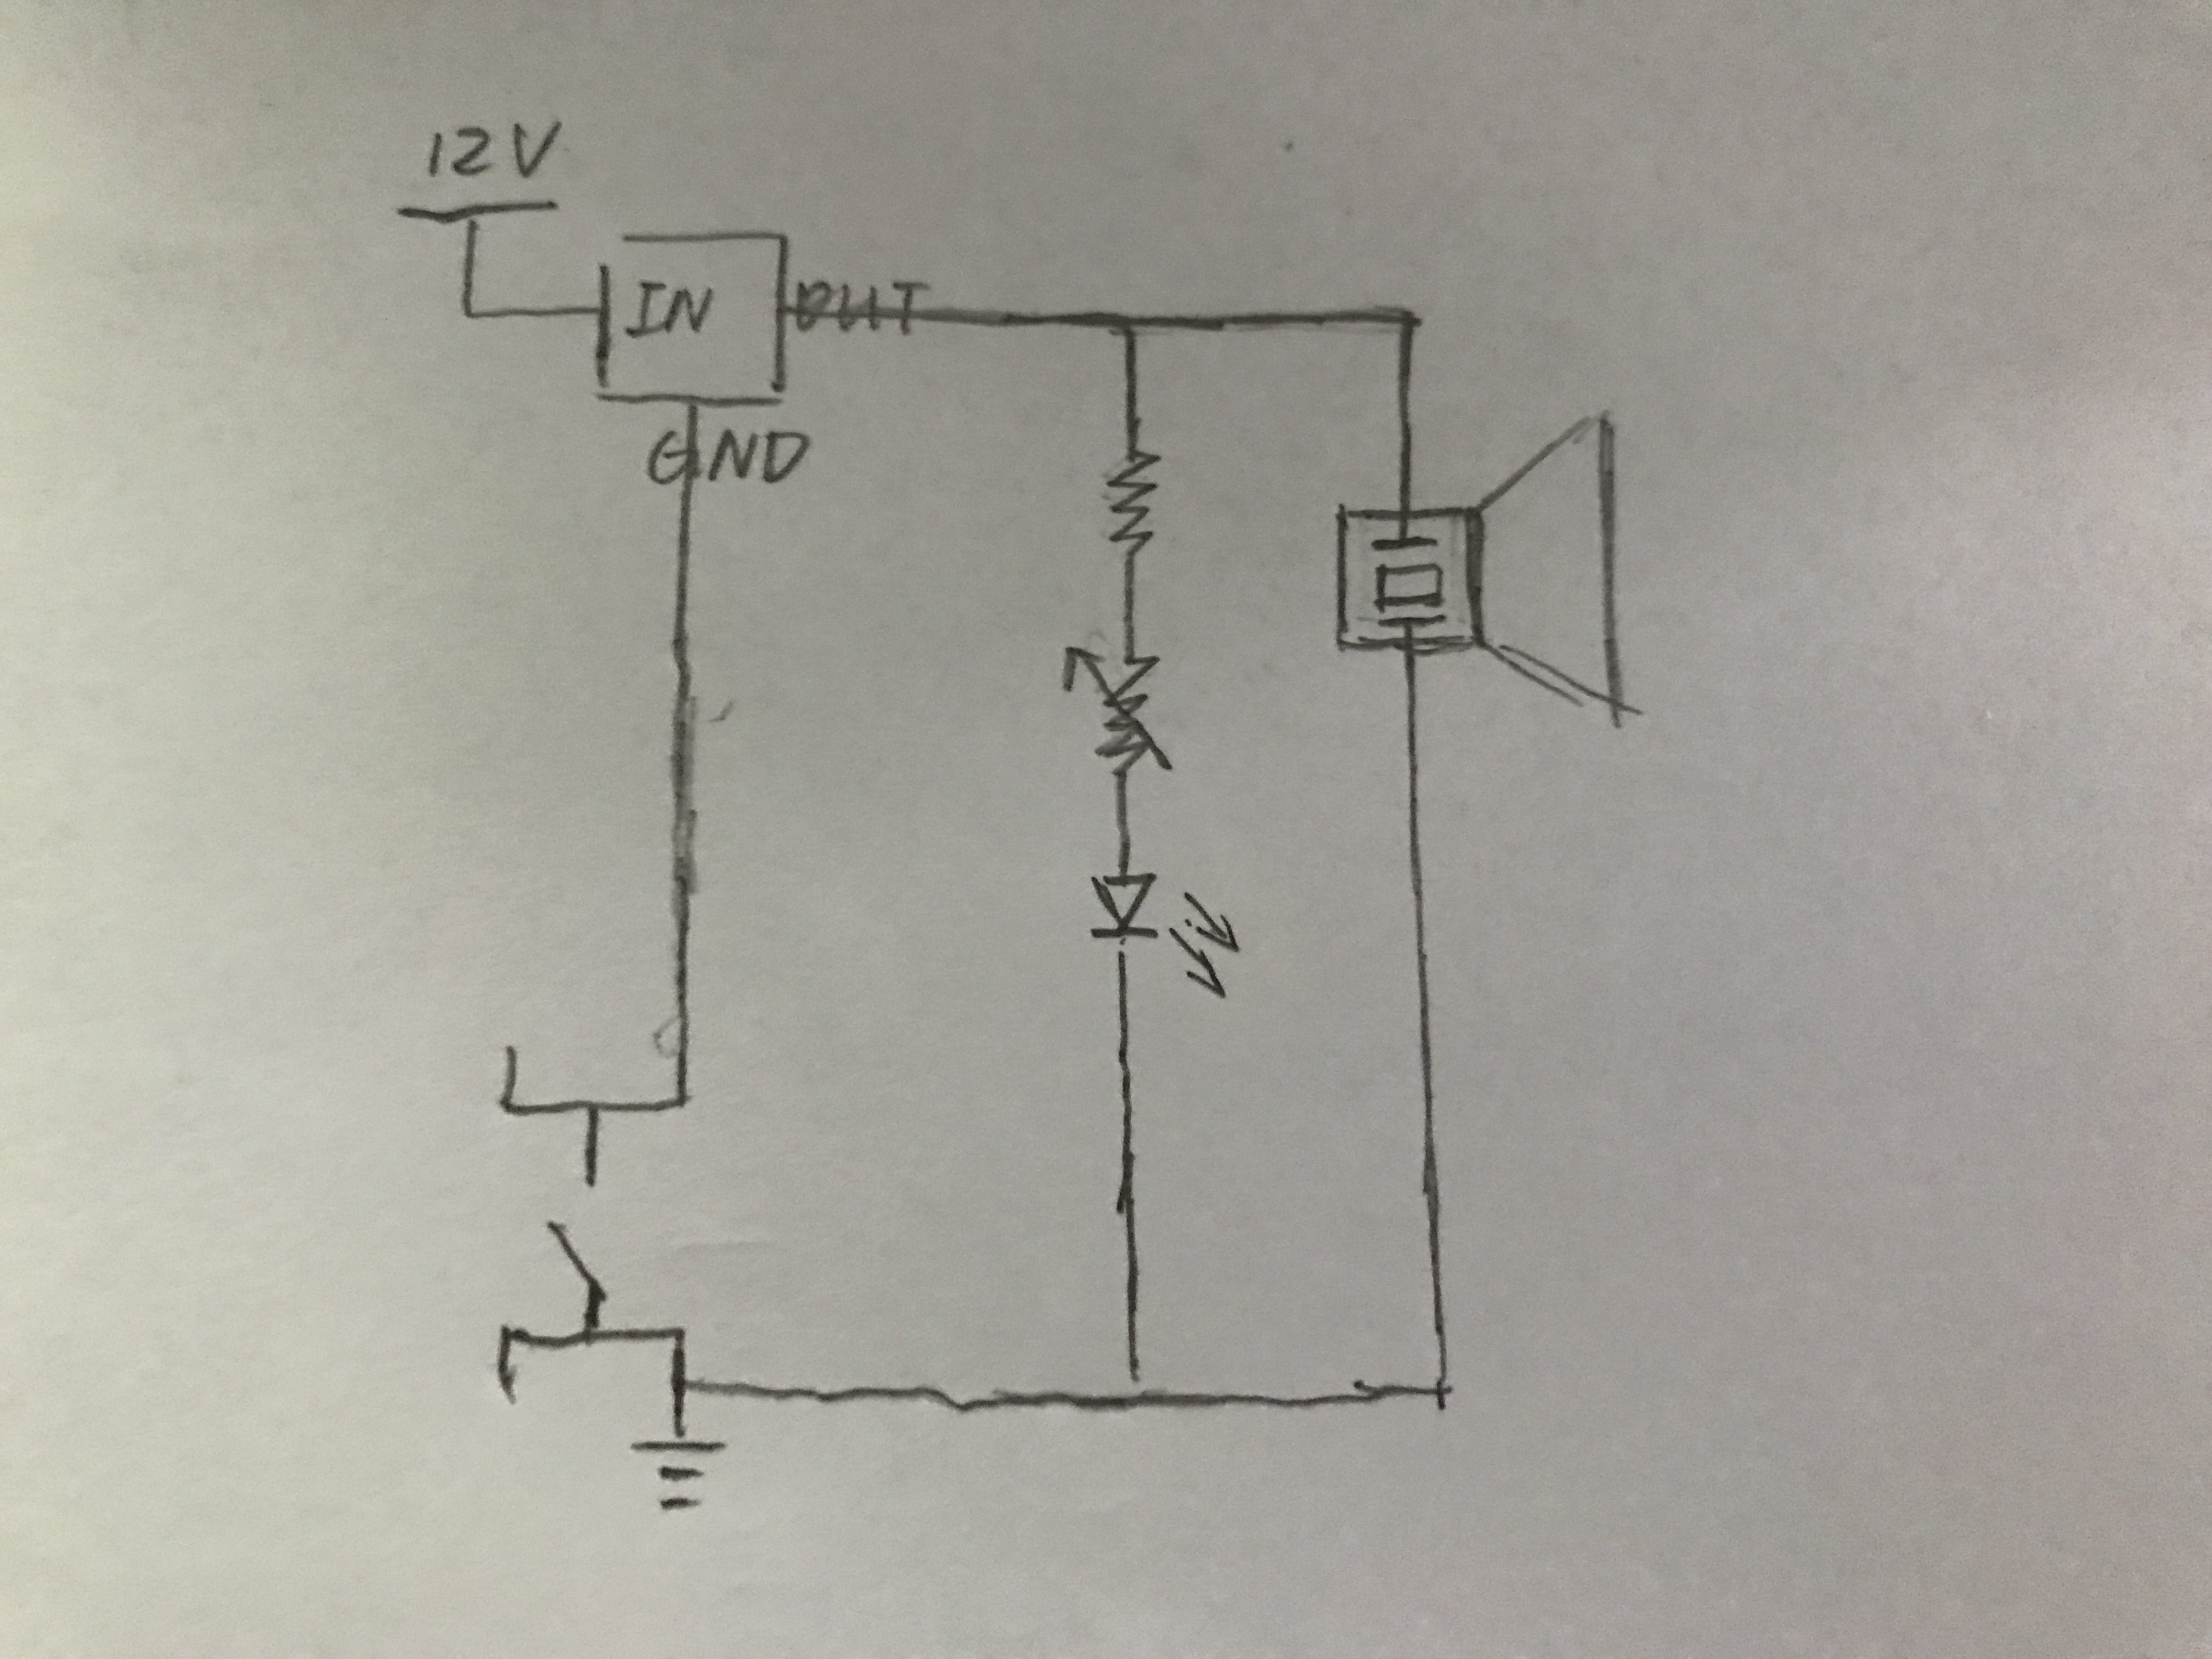 Imx Interaction Lab Recitation 1 Basic Circuits Flora Lu Circuit Diagram Variable Resistor Compared To The Second We Made Just Added One Into Based On Original Success Came Smoothly